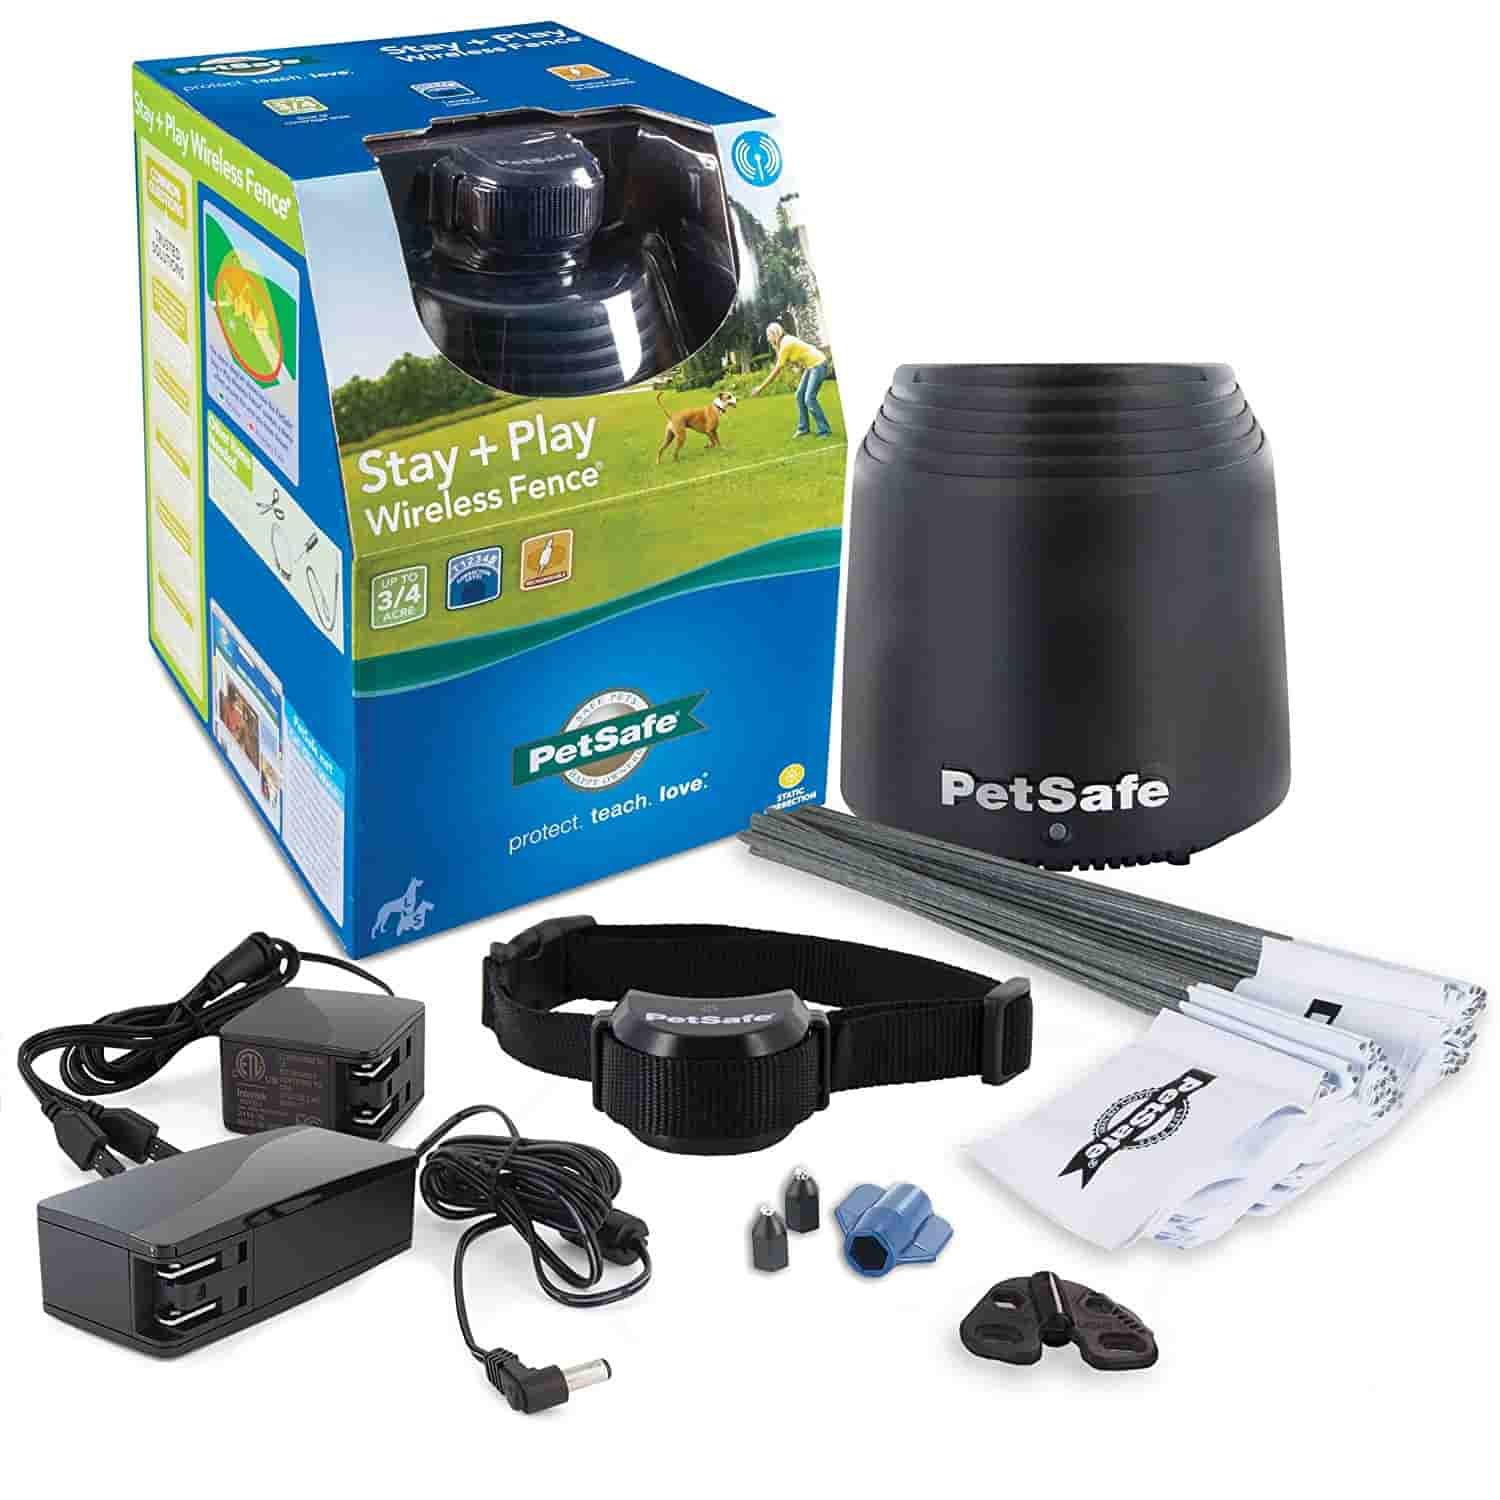 PetSafe Stay and Play Wireless Fence Image